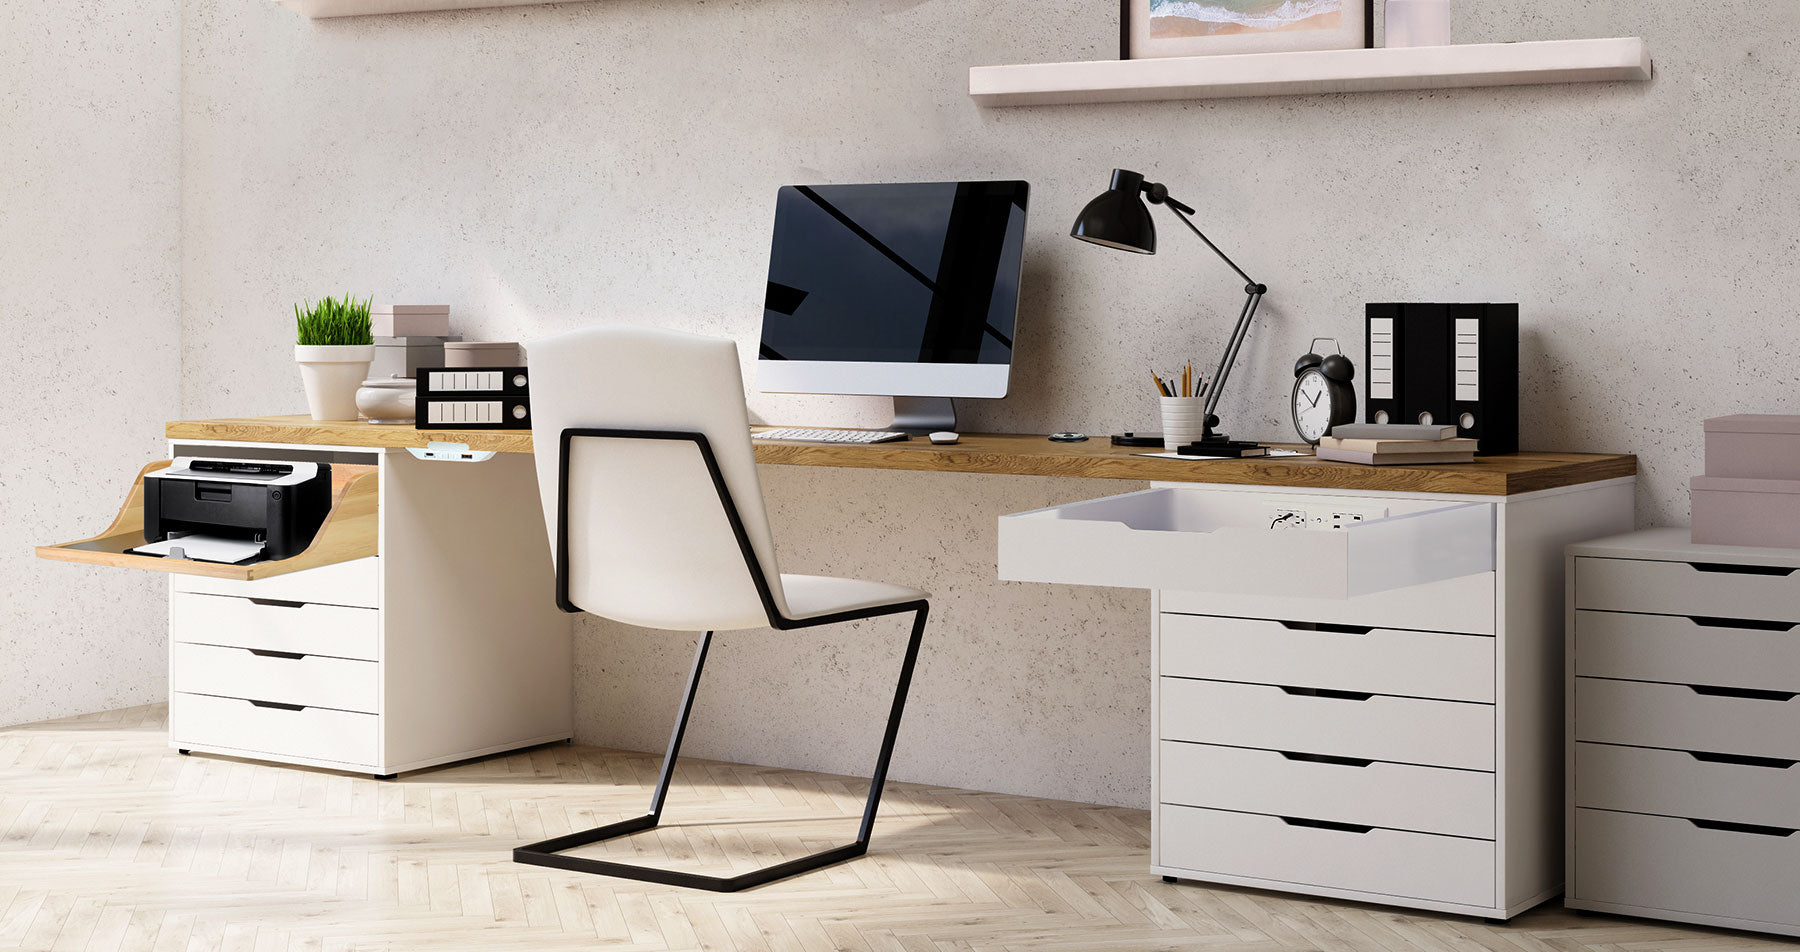 Home Office Design: How to Create a Highly Functional Workspace with Docking Drawer